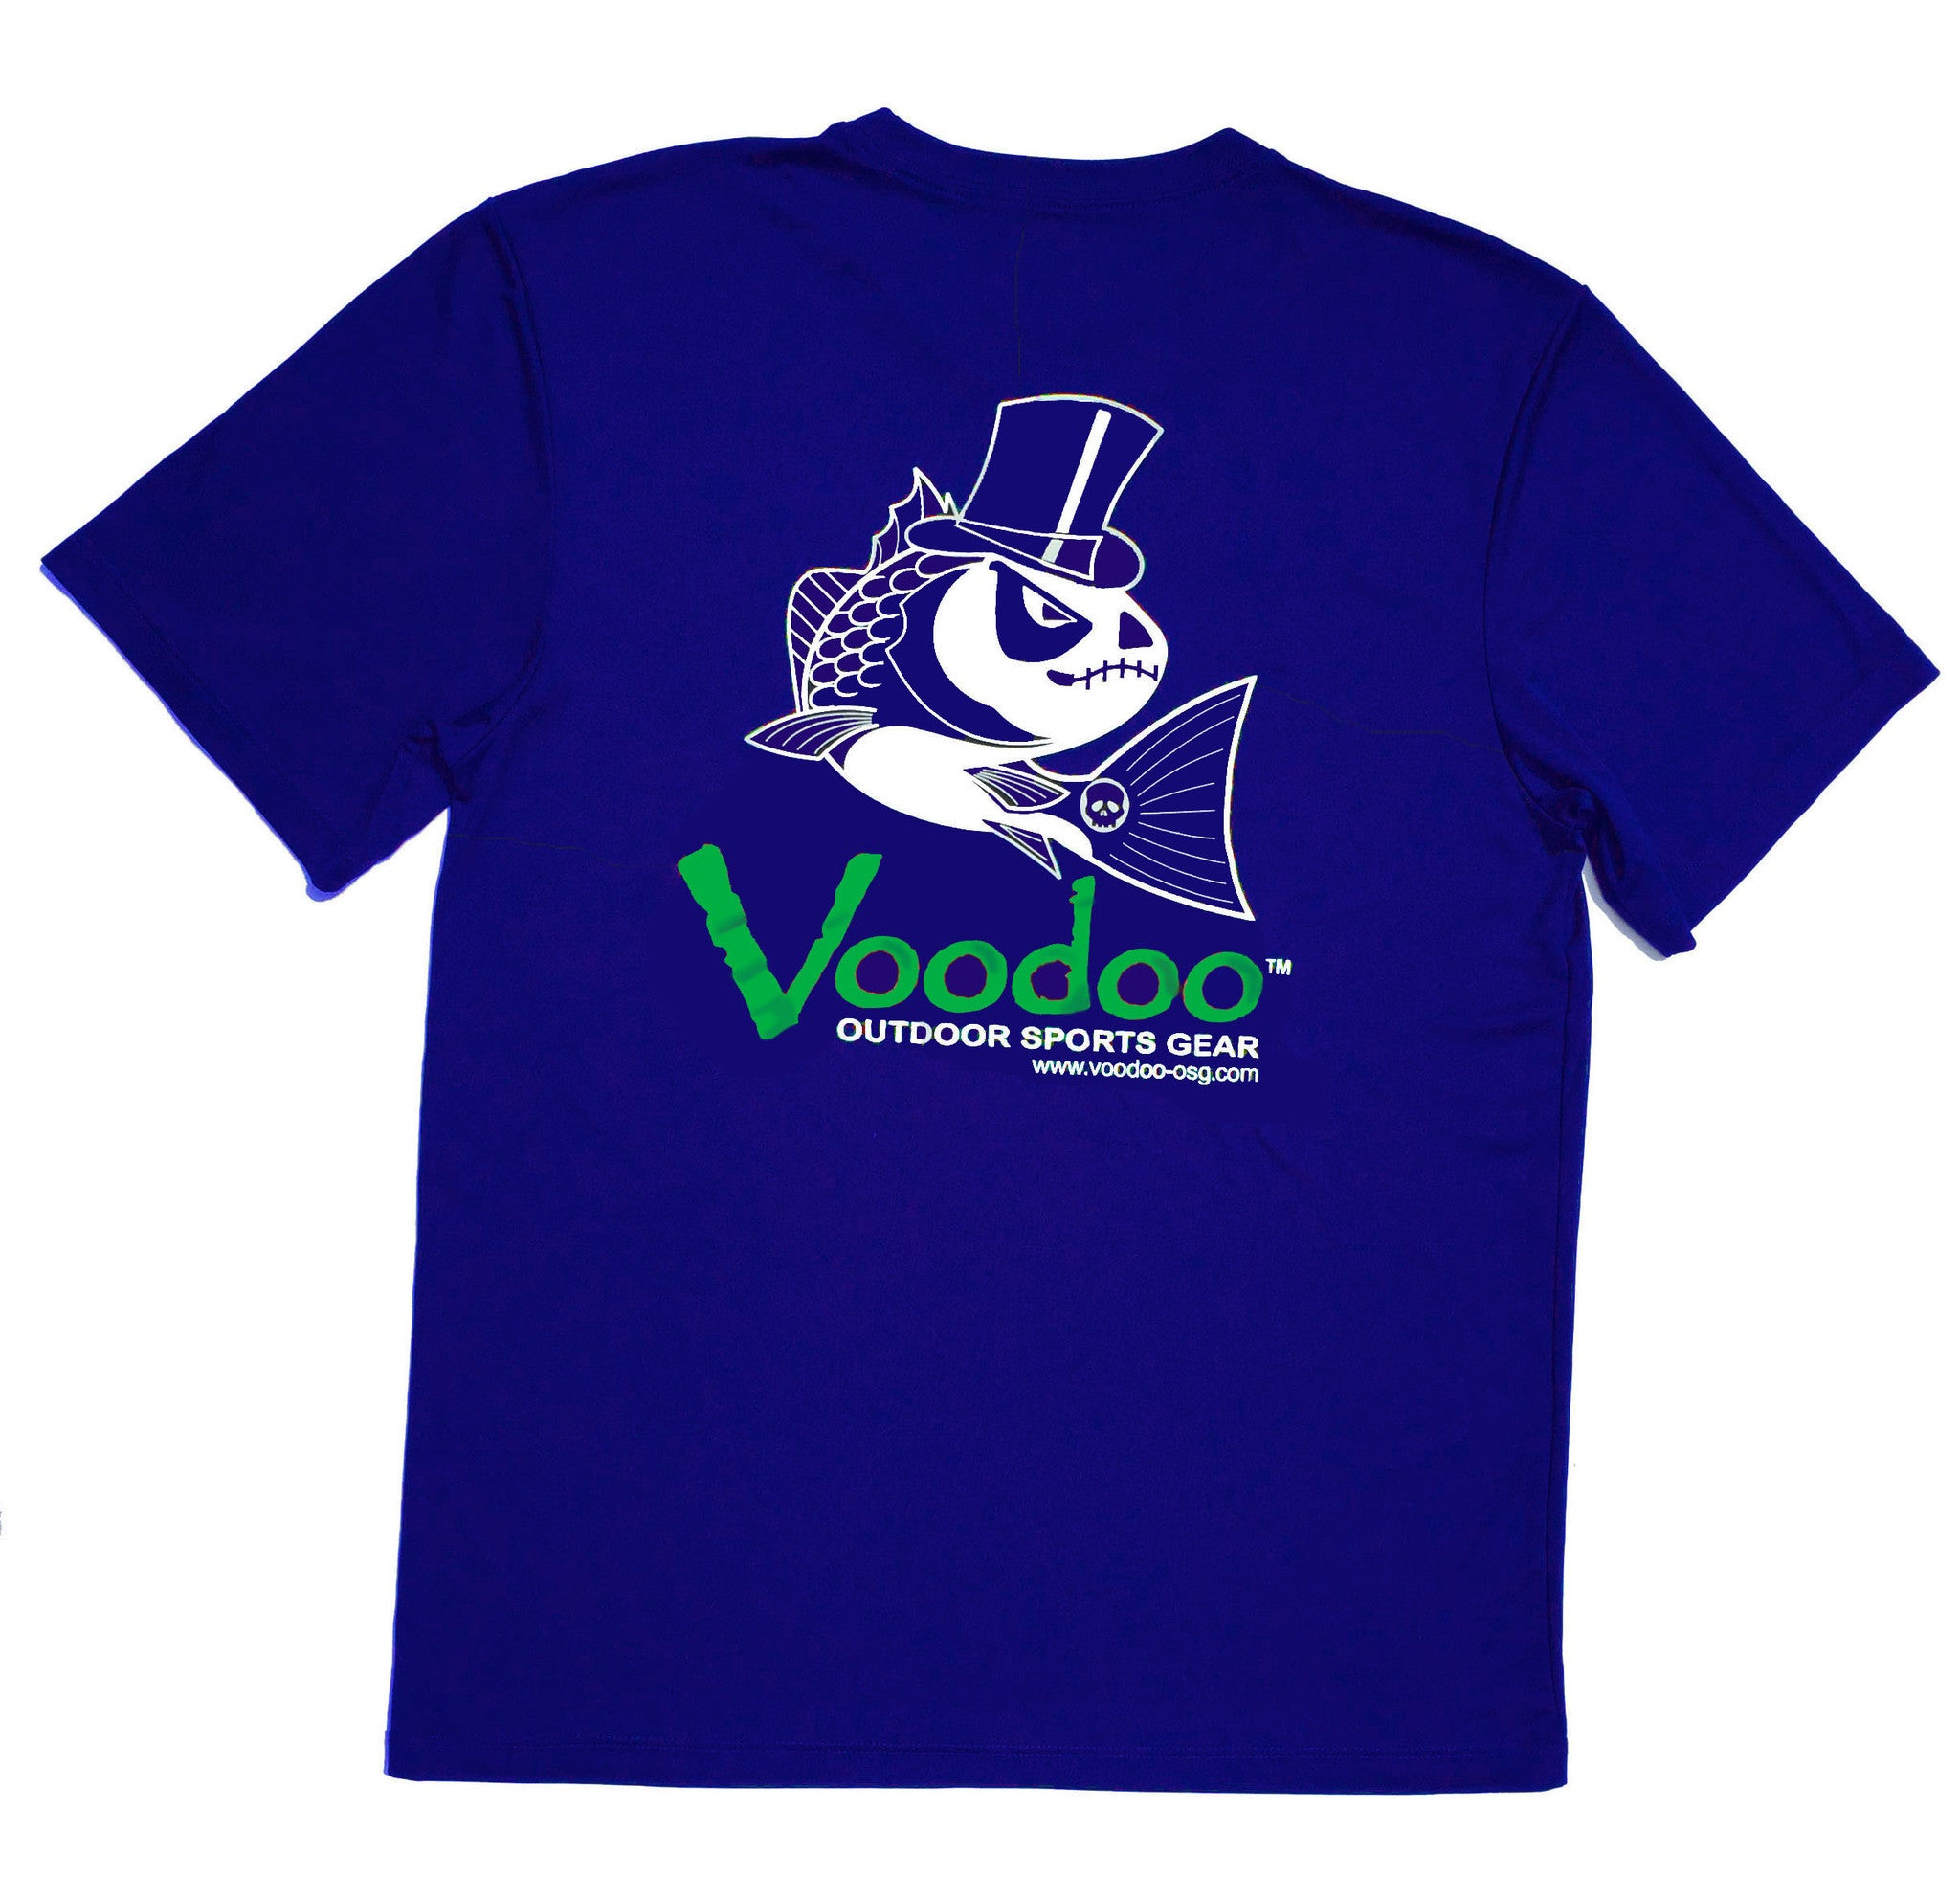 SALE  -  Voodoo Performance T-shirt (royal) short sleeve